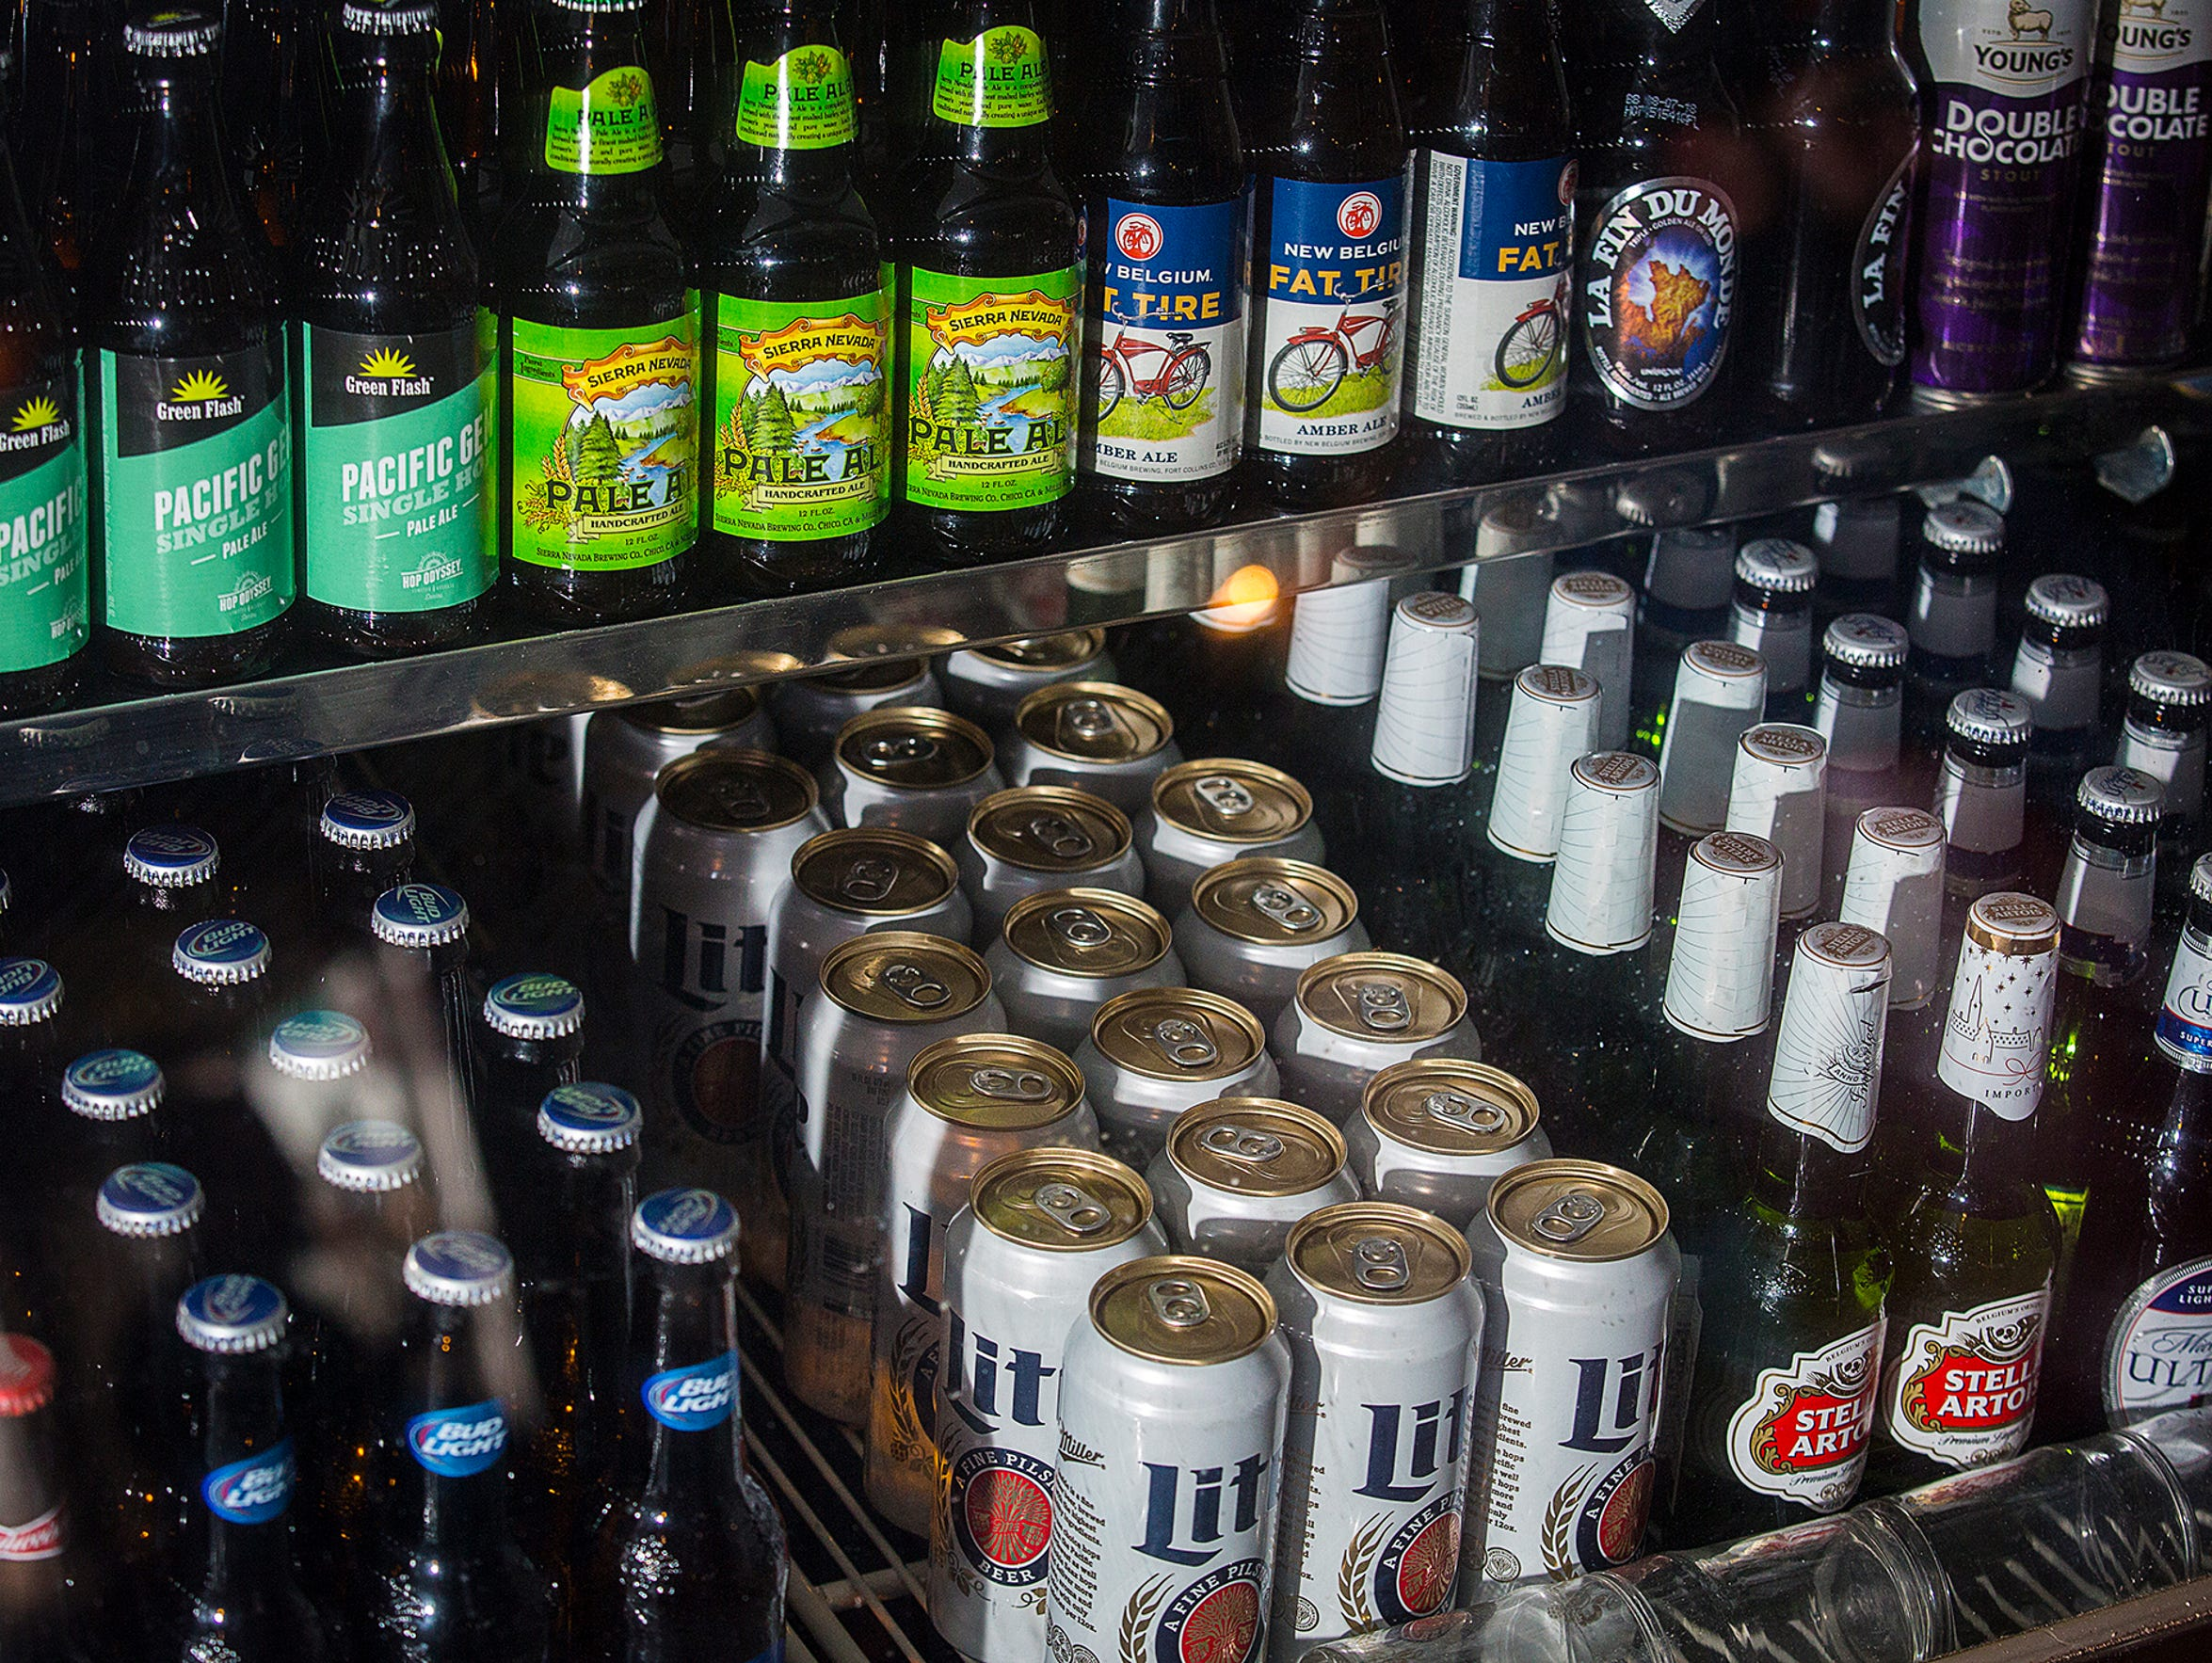 A beer selection at Savage's Ale House in Muncie.